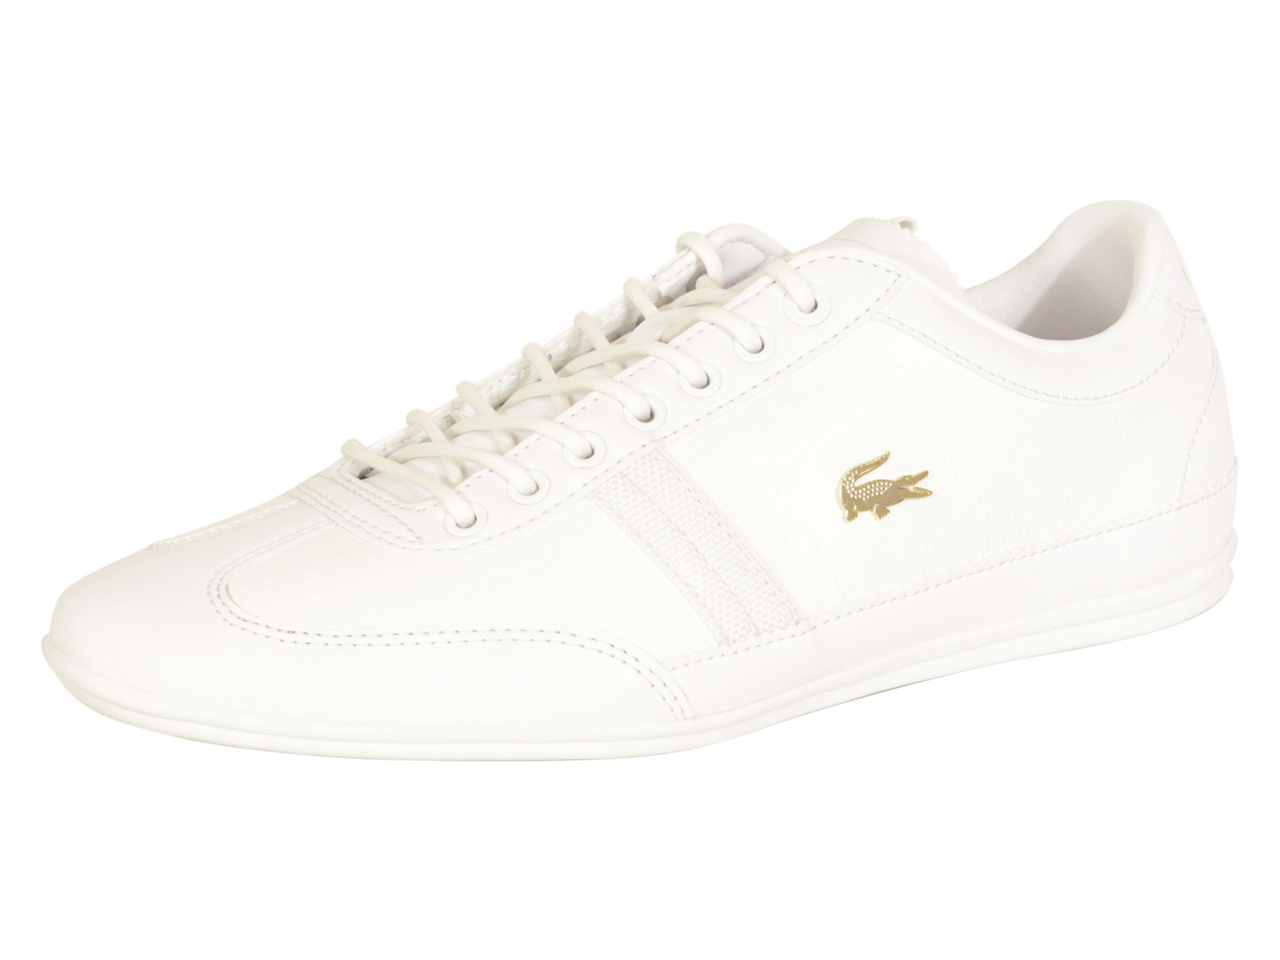 Homme Lacoste Misano - 119 Blanc Blanc paniers Chaussures